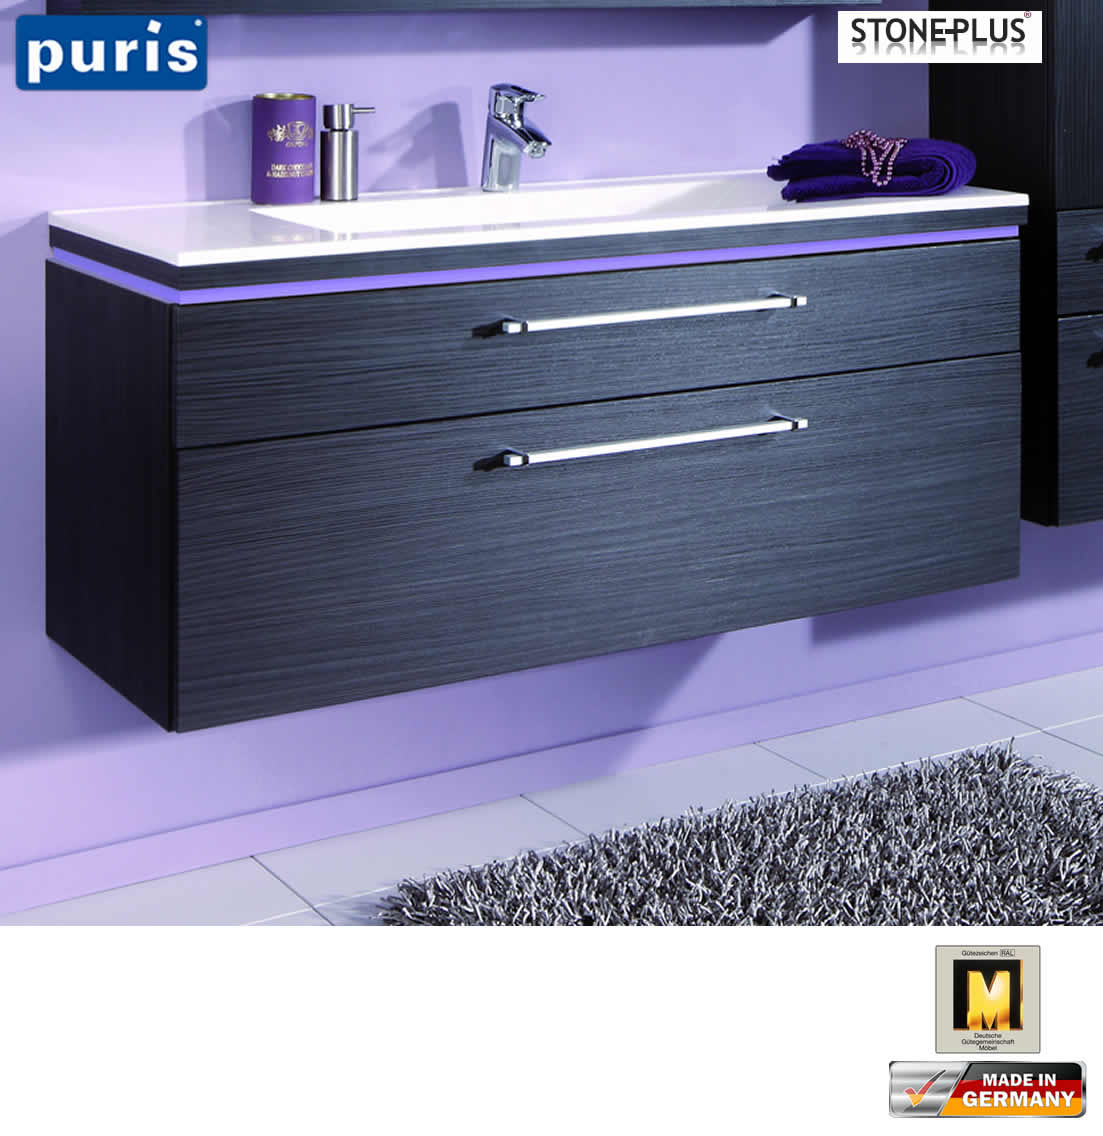 puris cool line waschtisch set 120 cm stoneplus led optional impuls home. Black Bedroom Furniture Sets. Home Design Ideas